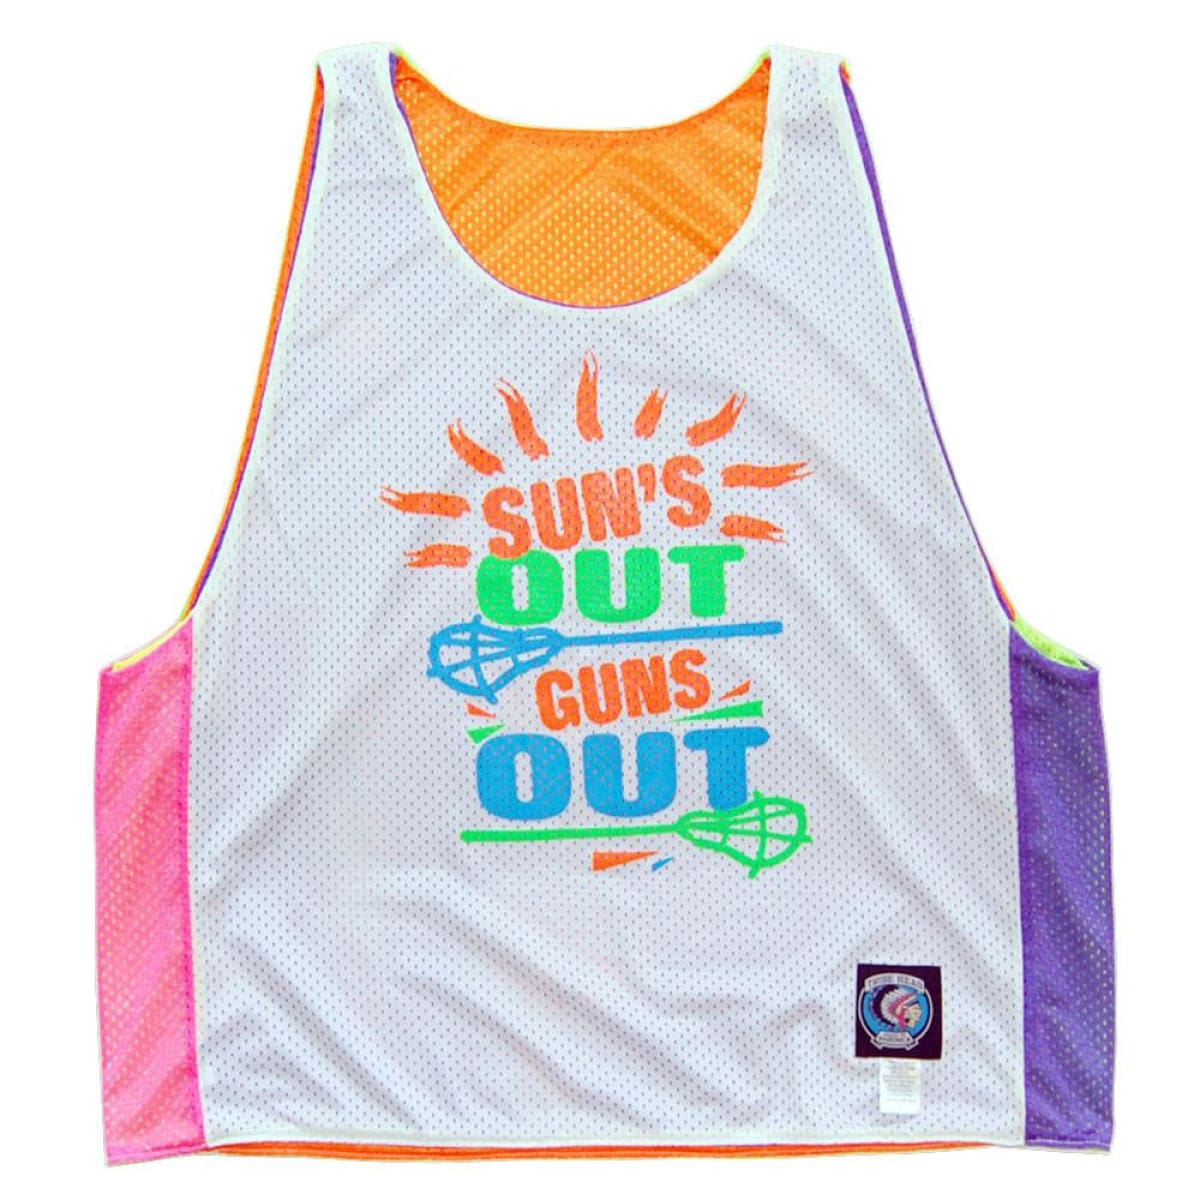 Suns Out Guns Out Lacrosse Sublimated Reversible - Graphic Mesh Lacrosse Pinnies